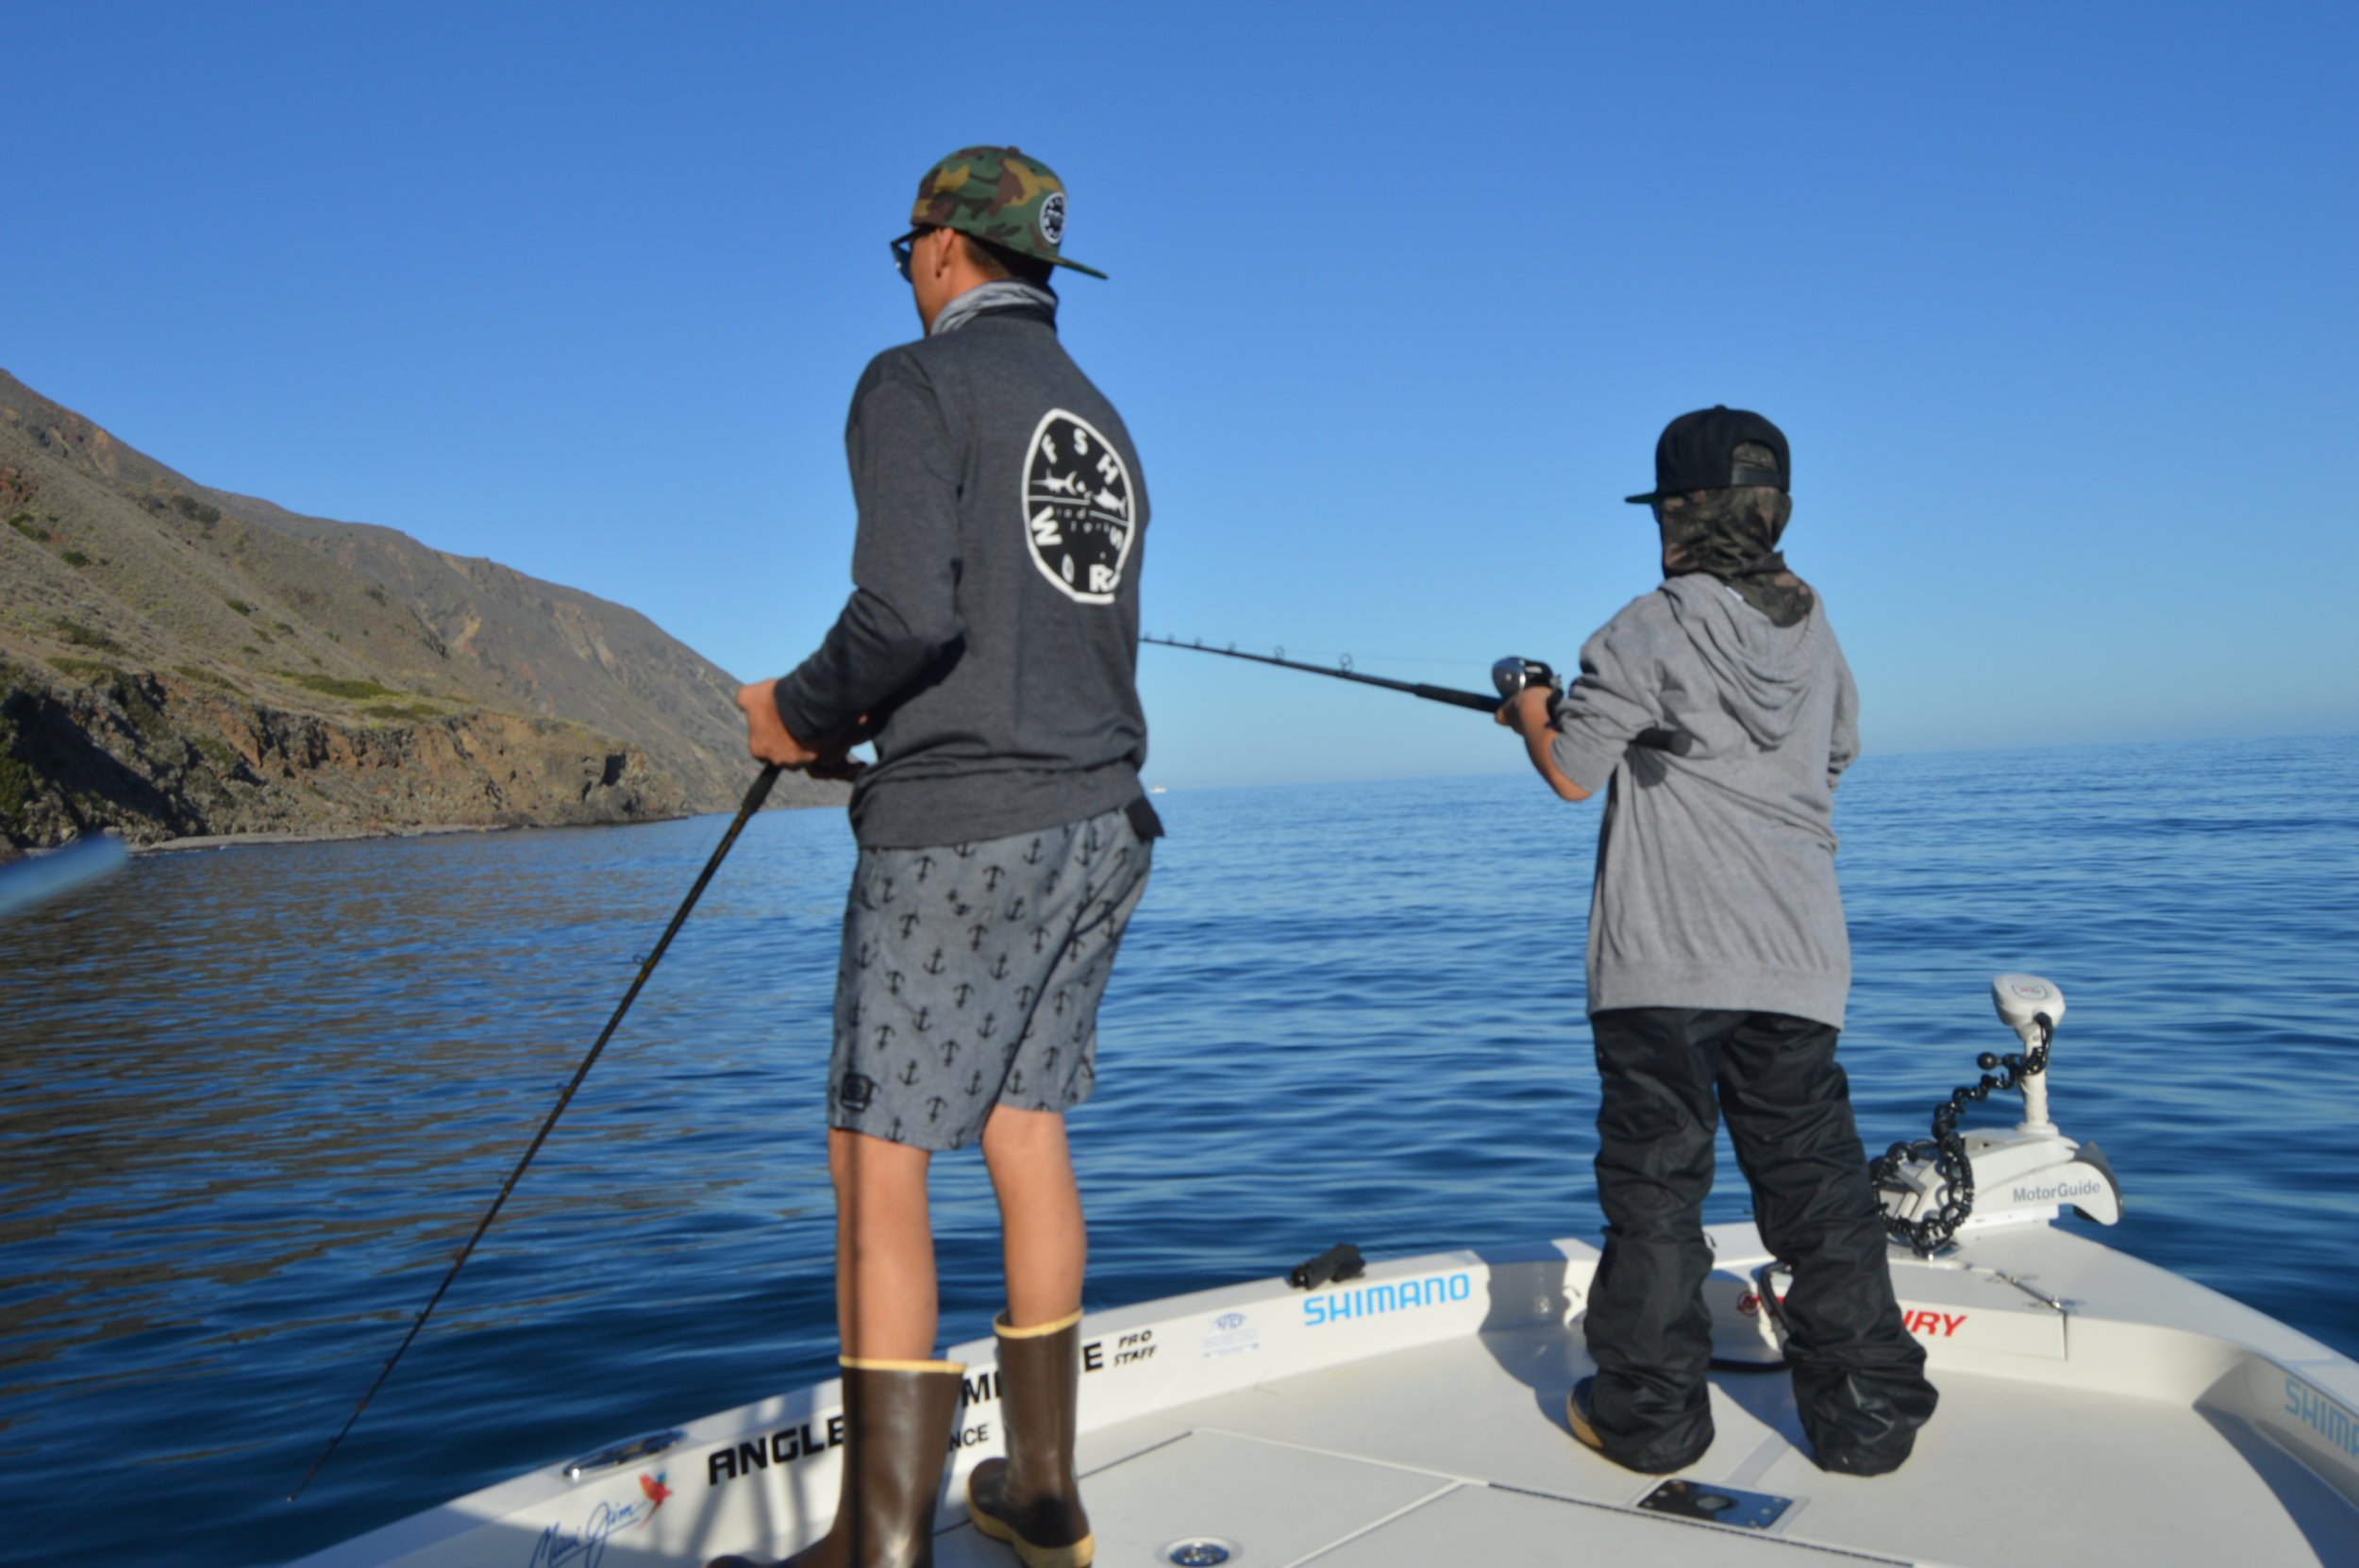 Sharing the bow with your son on his birthday! Priceless!